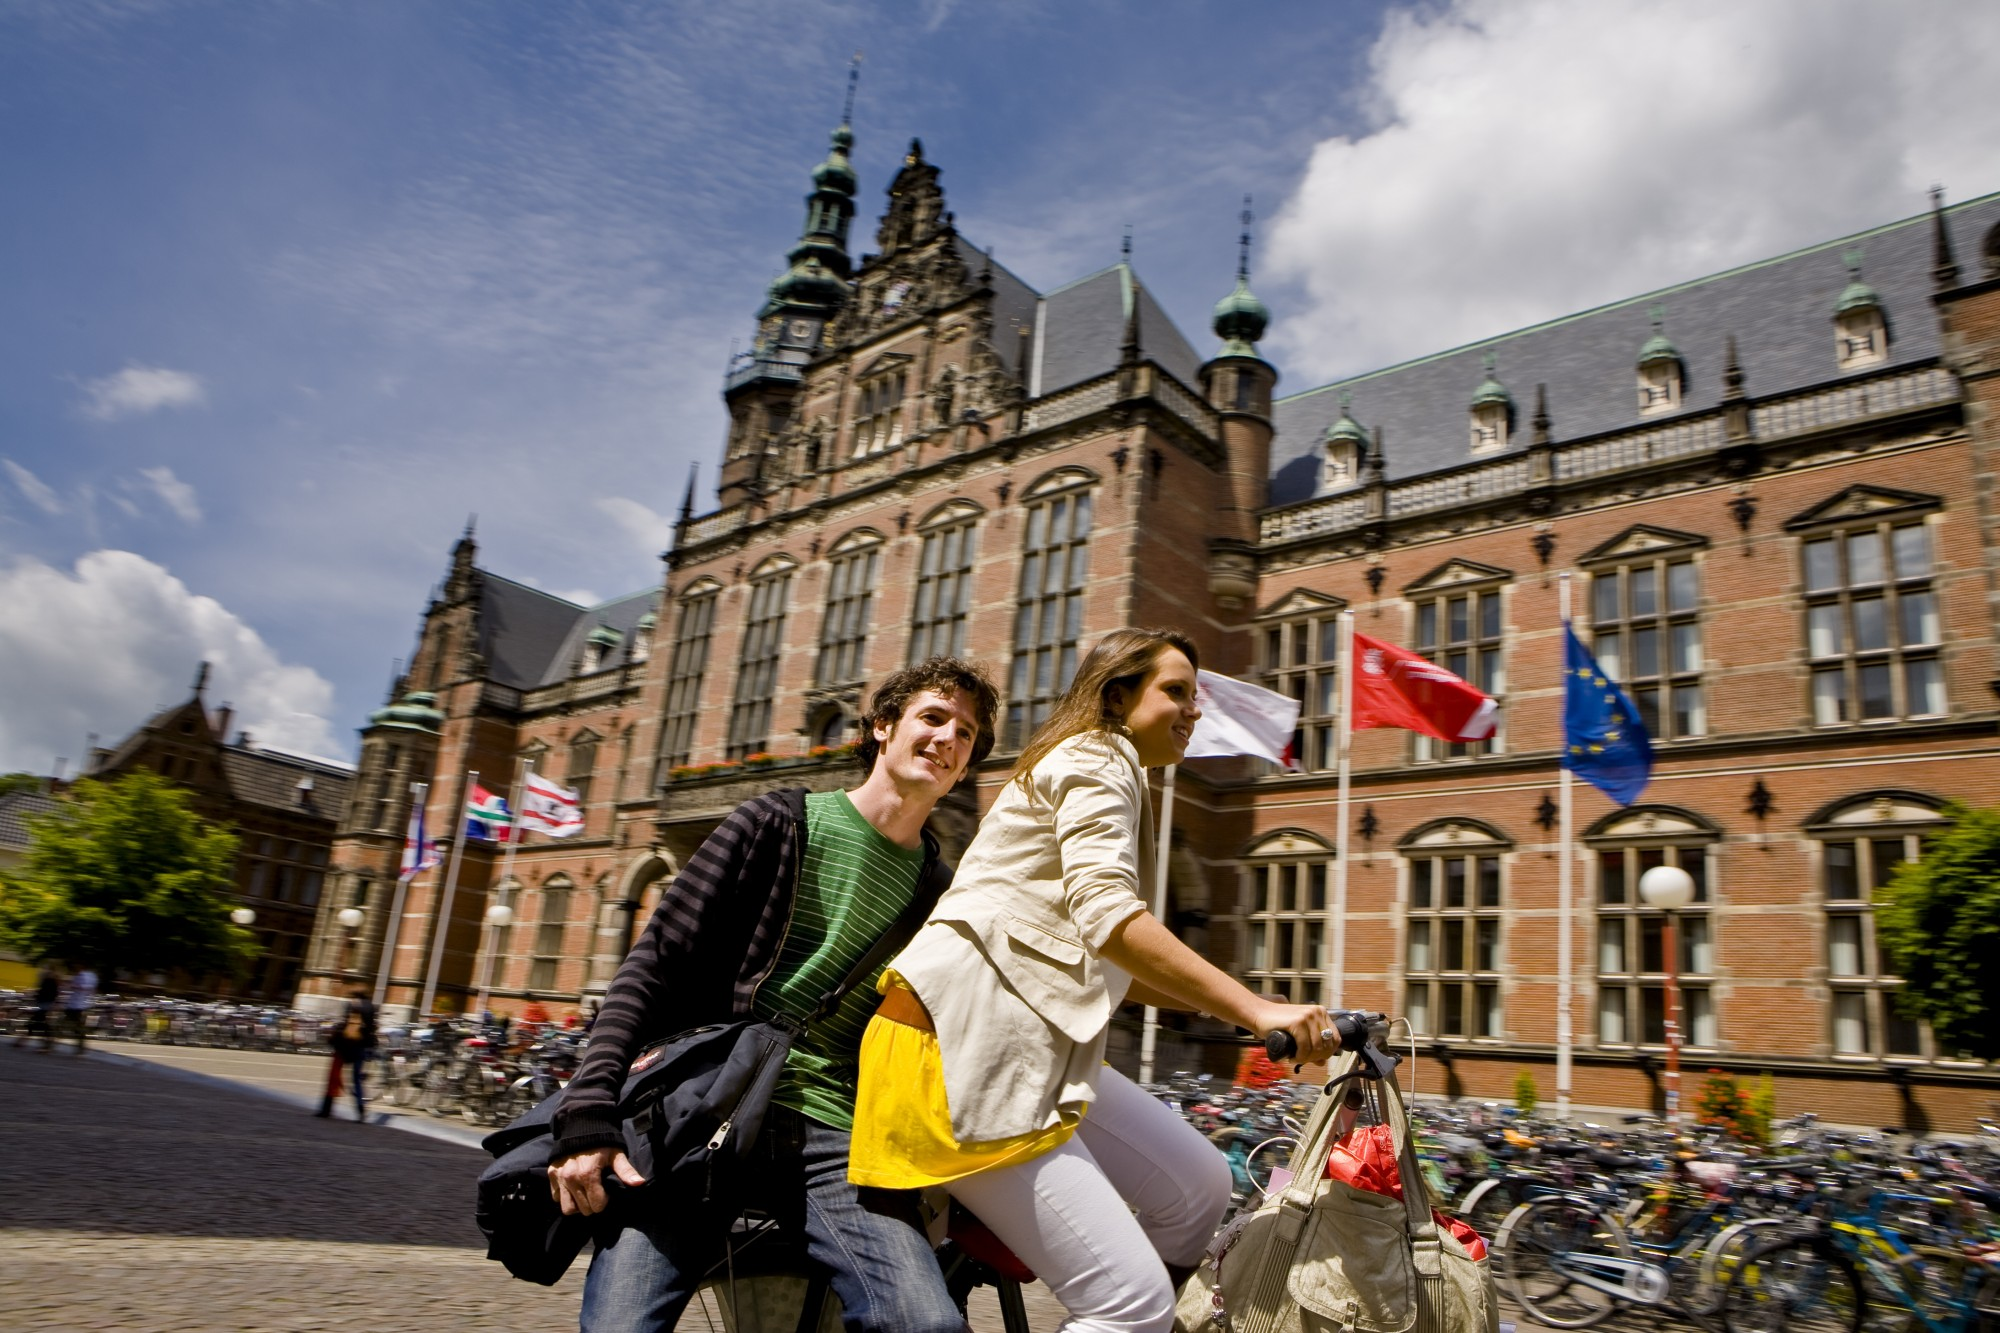 Eric Bleumink Fund Scholarship 2020/2021 for Master's Study at University of Groningen